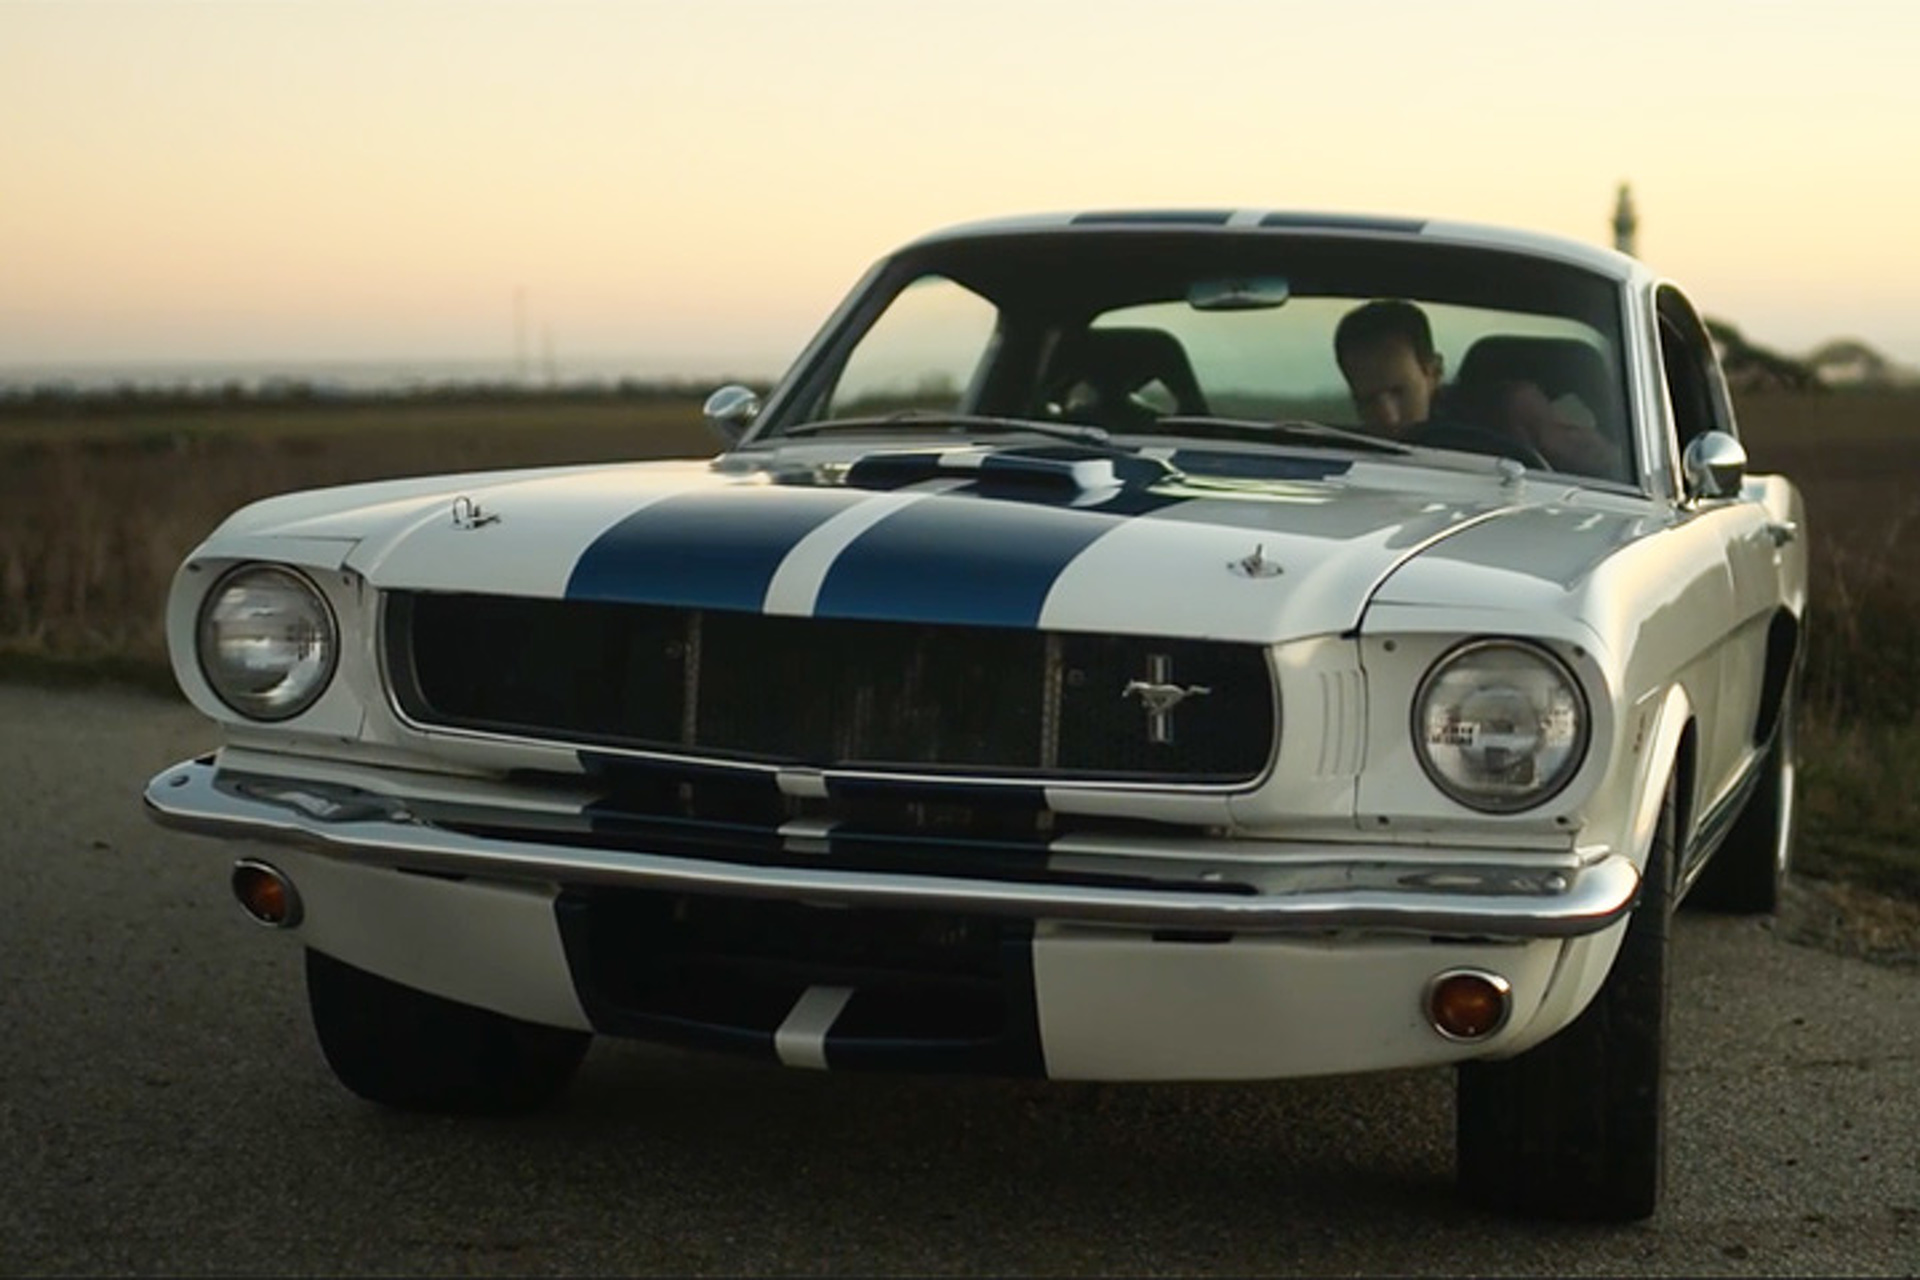 This '65 Ford Mustang Jump-Started a Racing Career